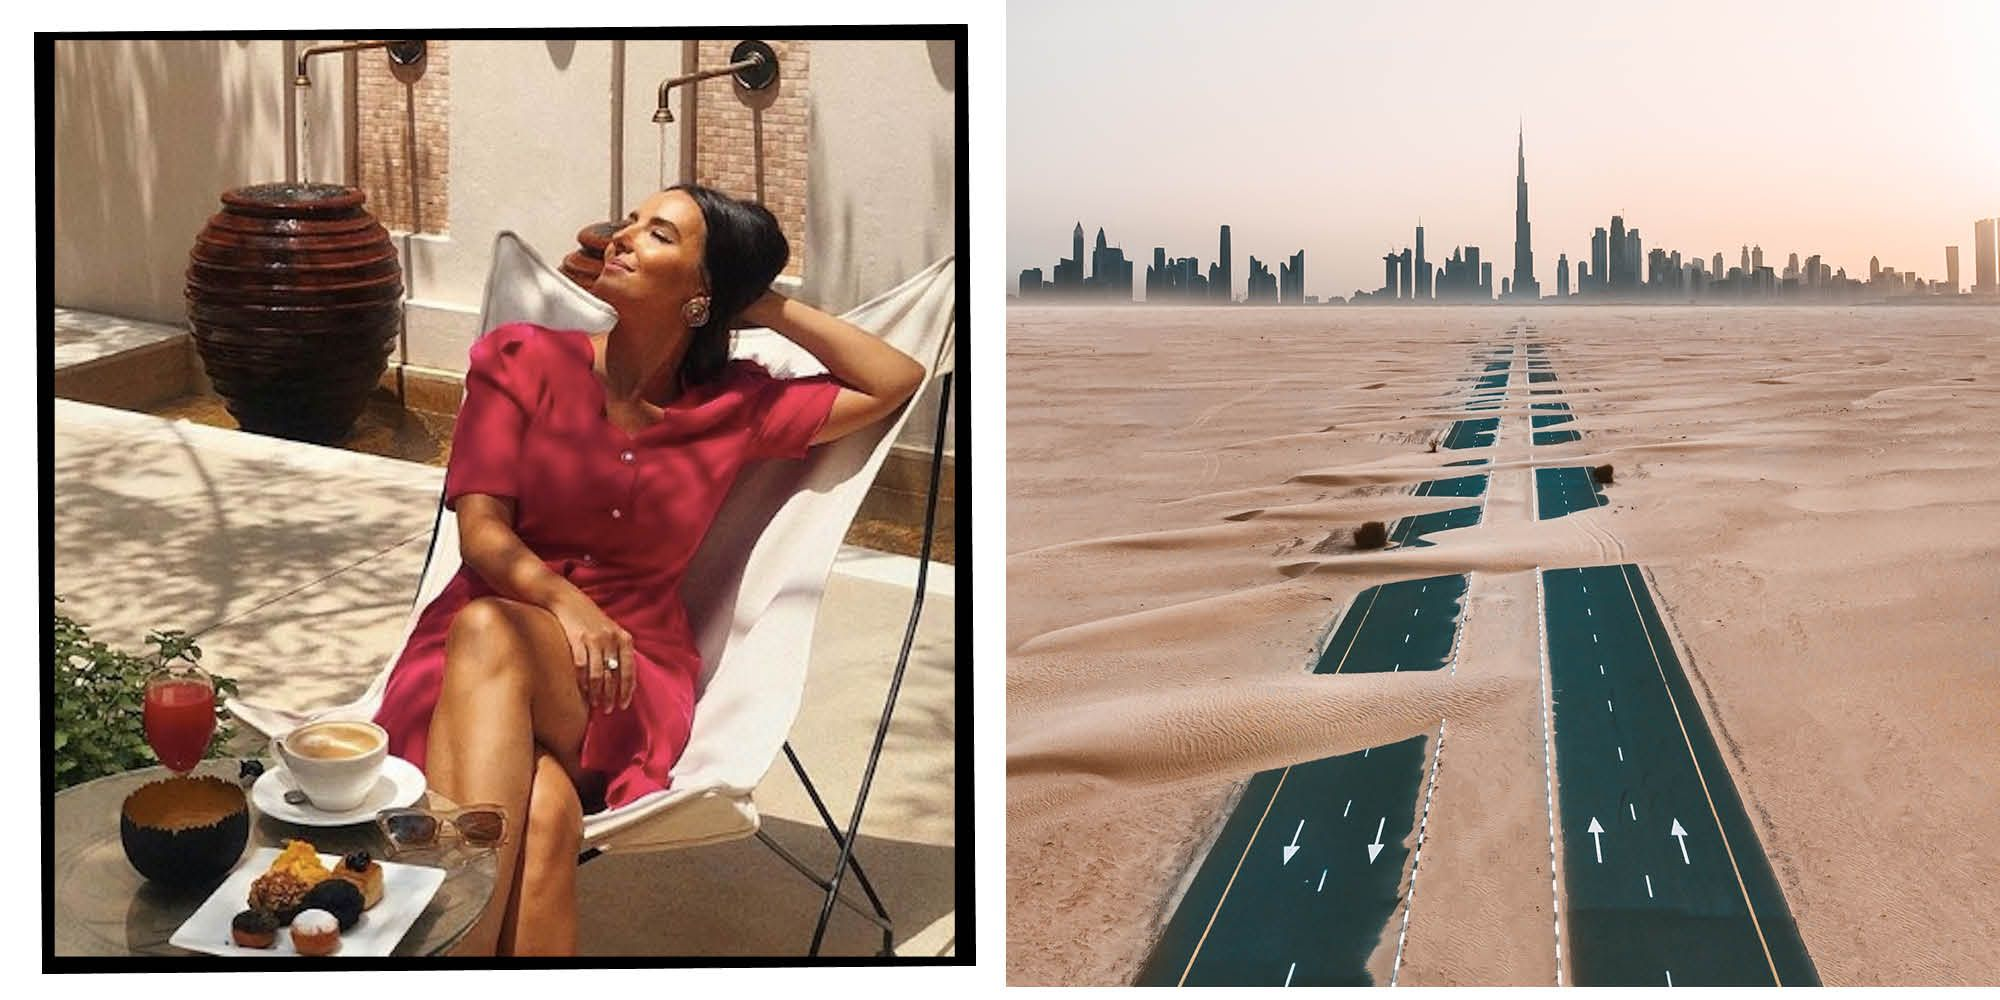 Things To Do In Dubai: From Boutique Clothing Stores To Chic Bars And Beyond